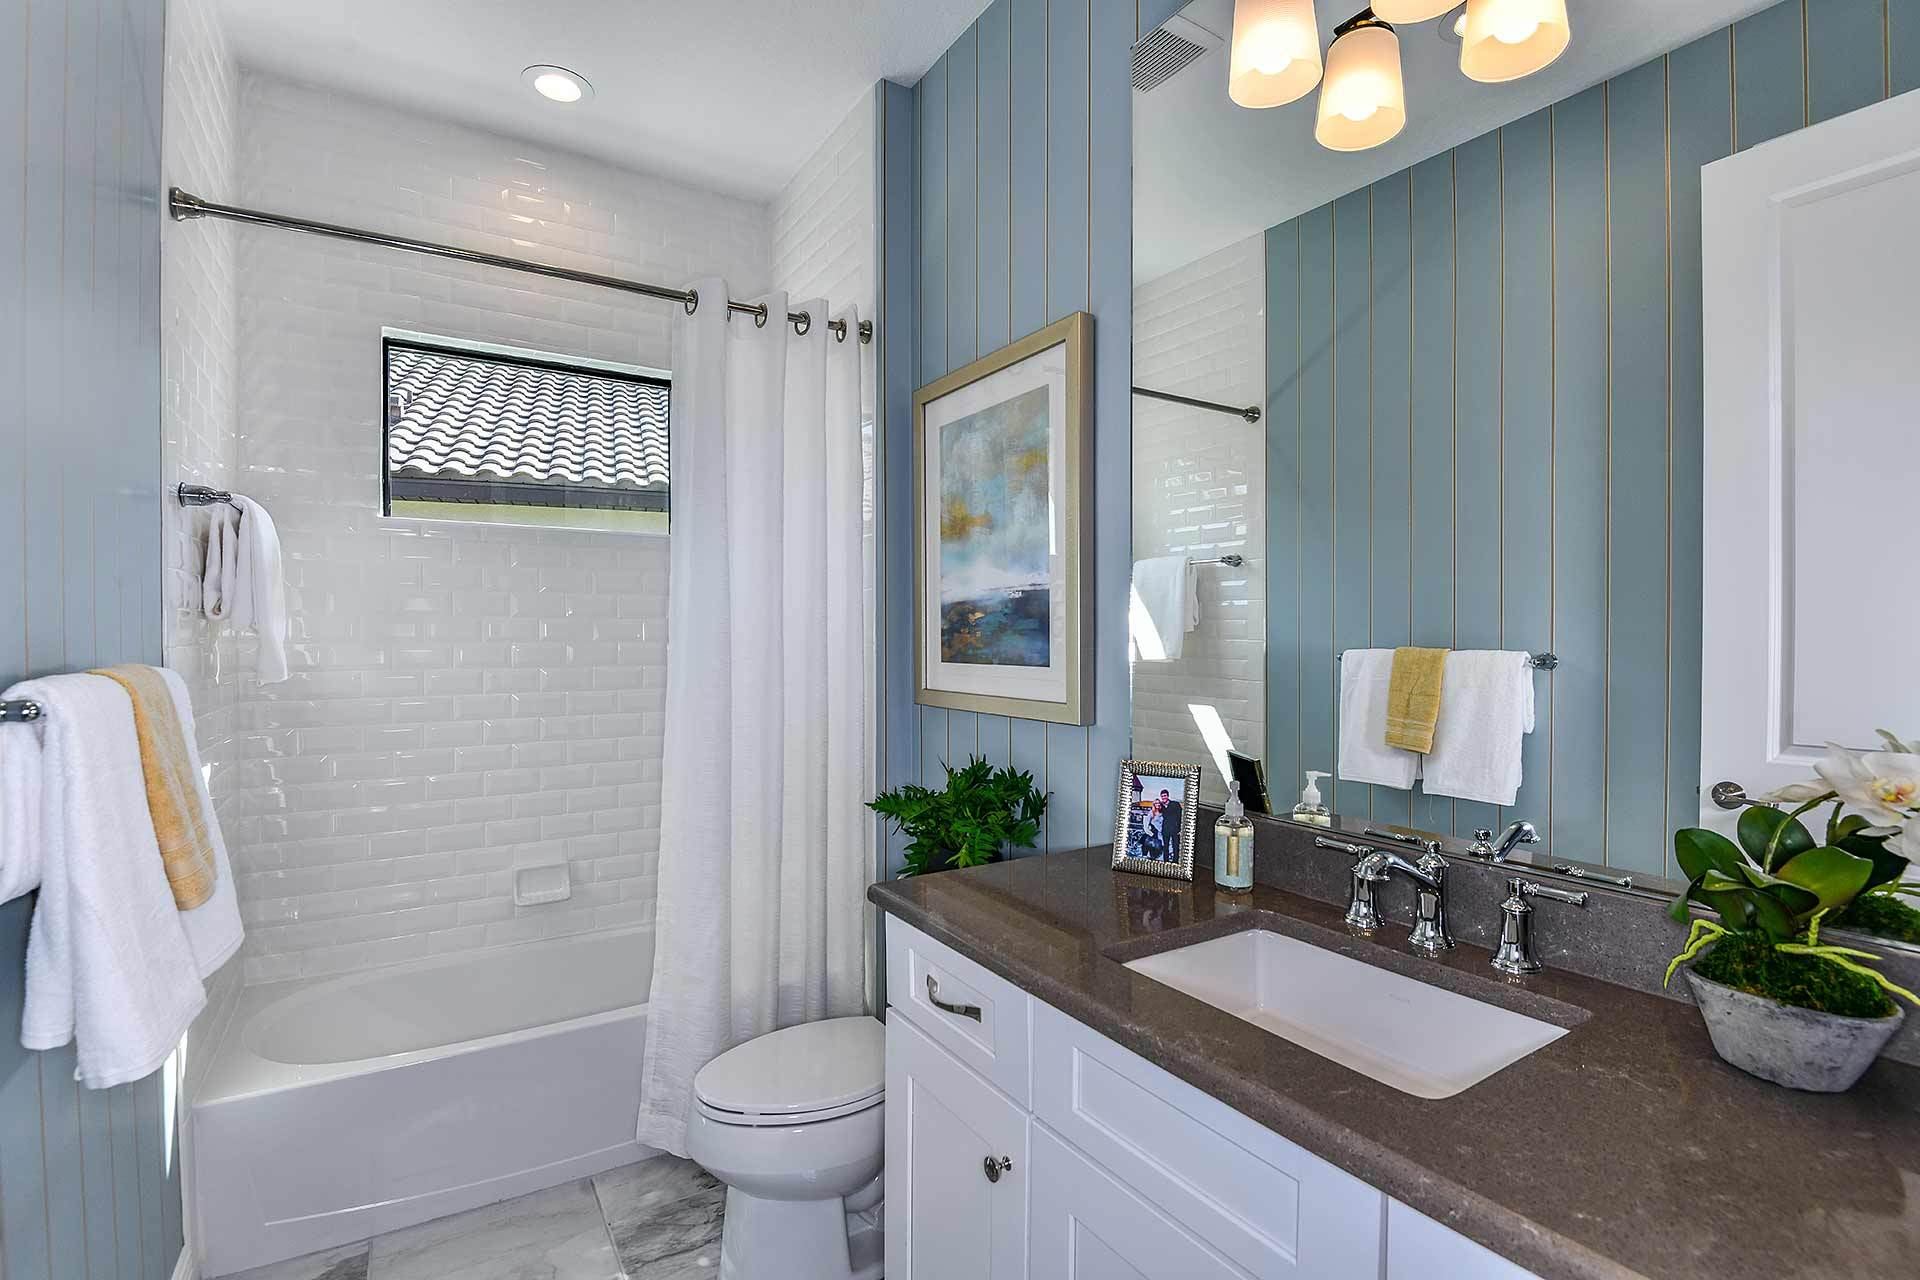 Bathroom featured in the White Star By Neal Communities in Sarasota-Bradenton, FL